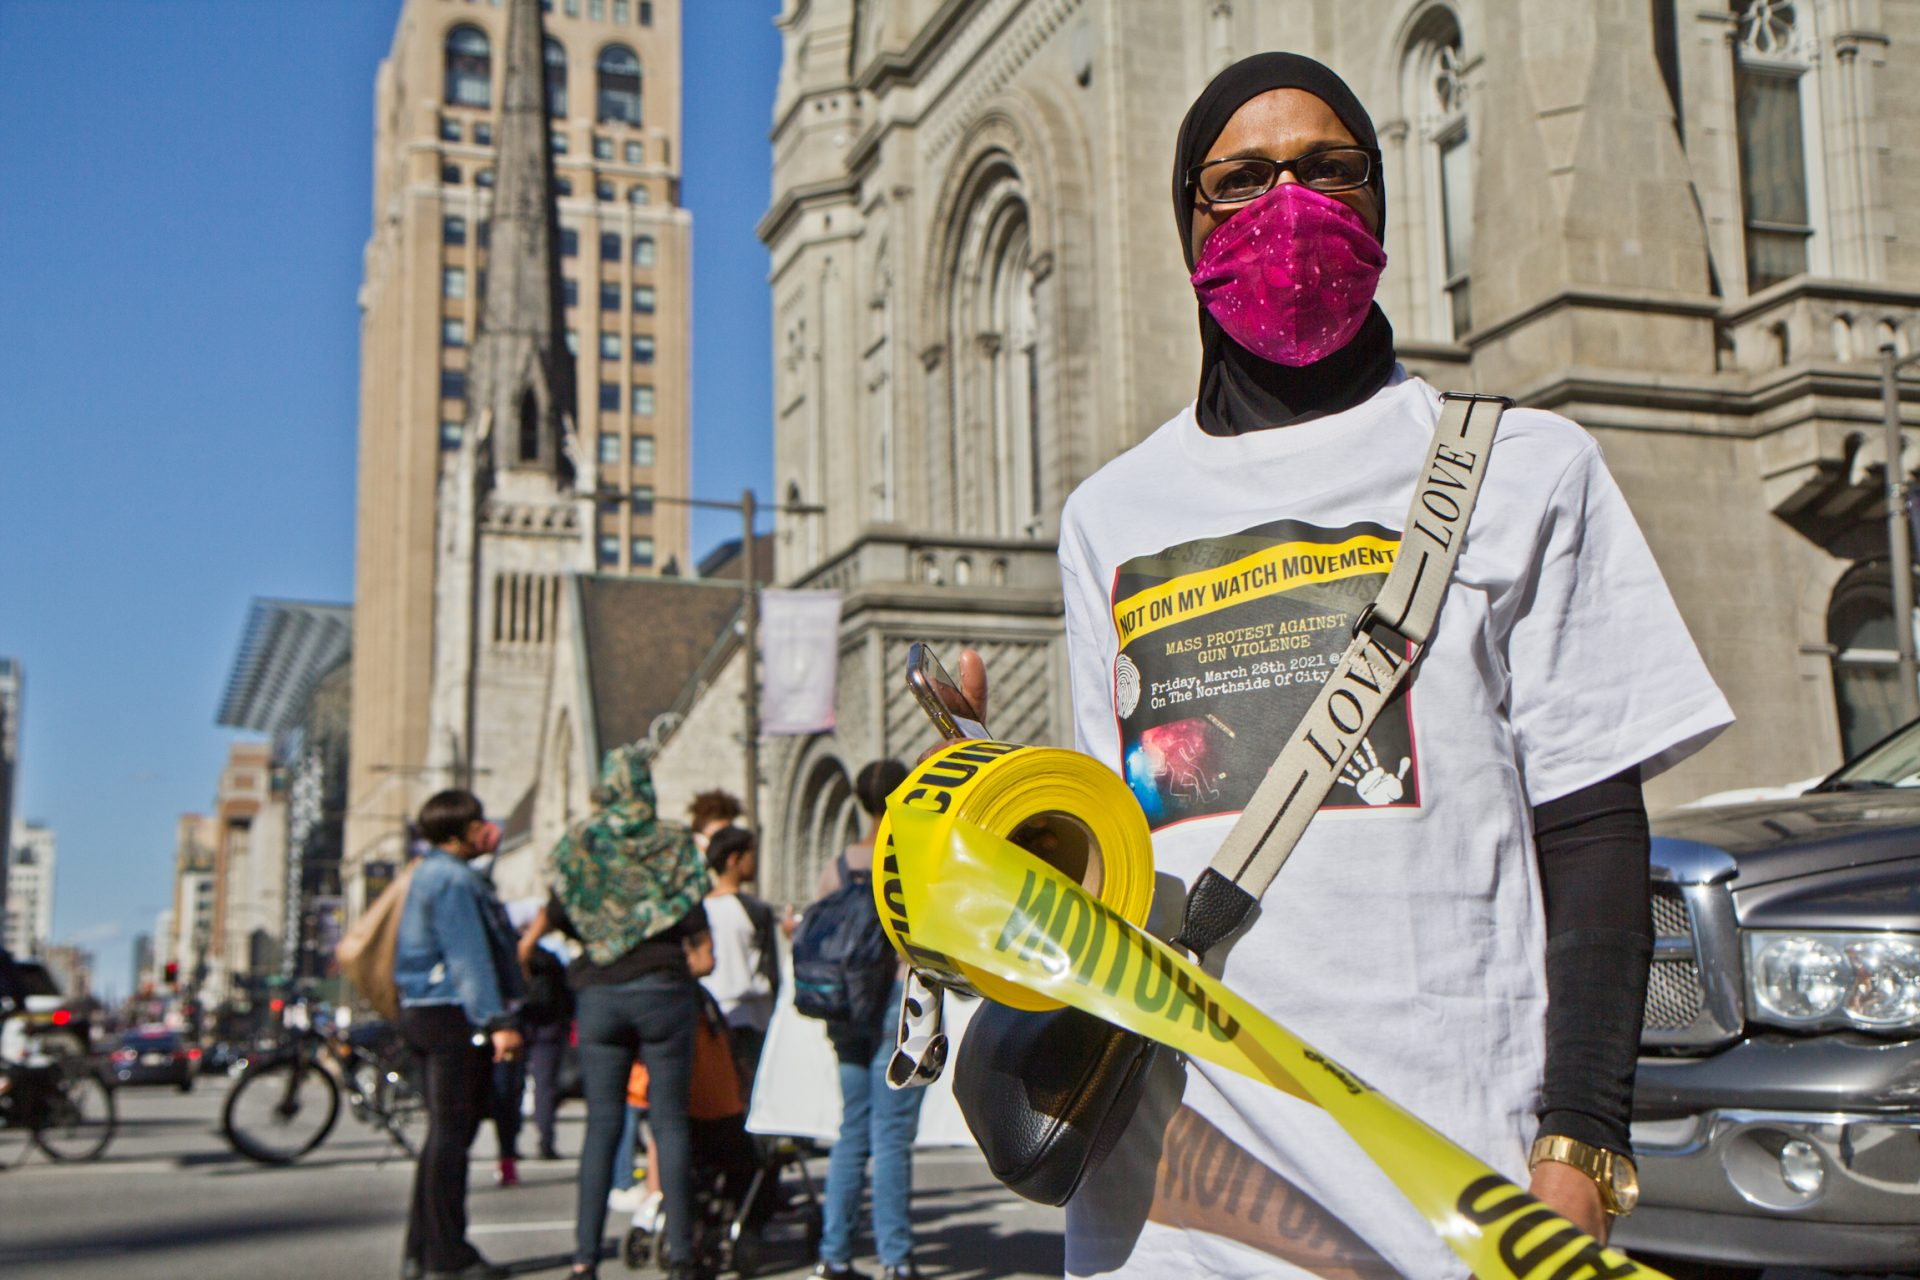 Zahirah Ahmad, a North Philly resident and member of the Not On My Watch movement, joined activists at a rally and march at City Hall in Philadelphia on March 26, 2021, to demand the city put more resources to preventing gun violence.